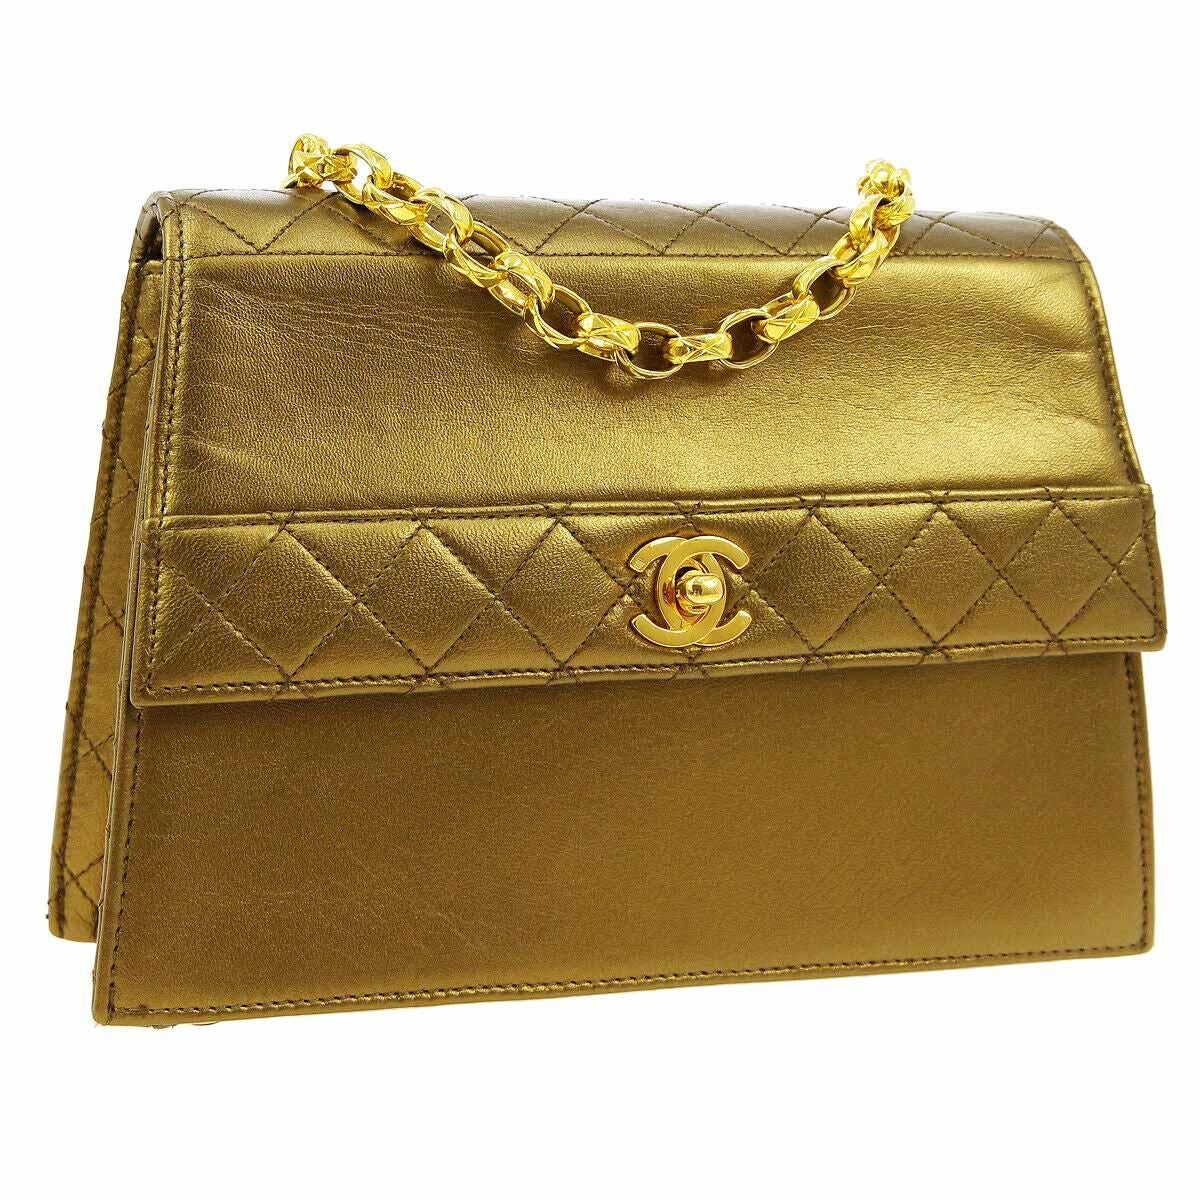 Chanel Metallic Gold Leather Small Party Evening Kelly Box Shoulder Flap Bag